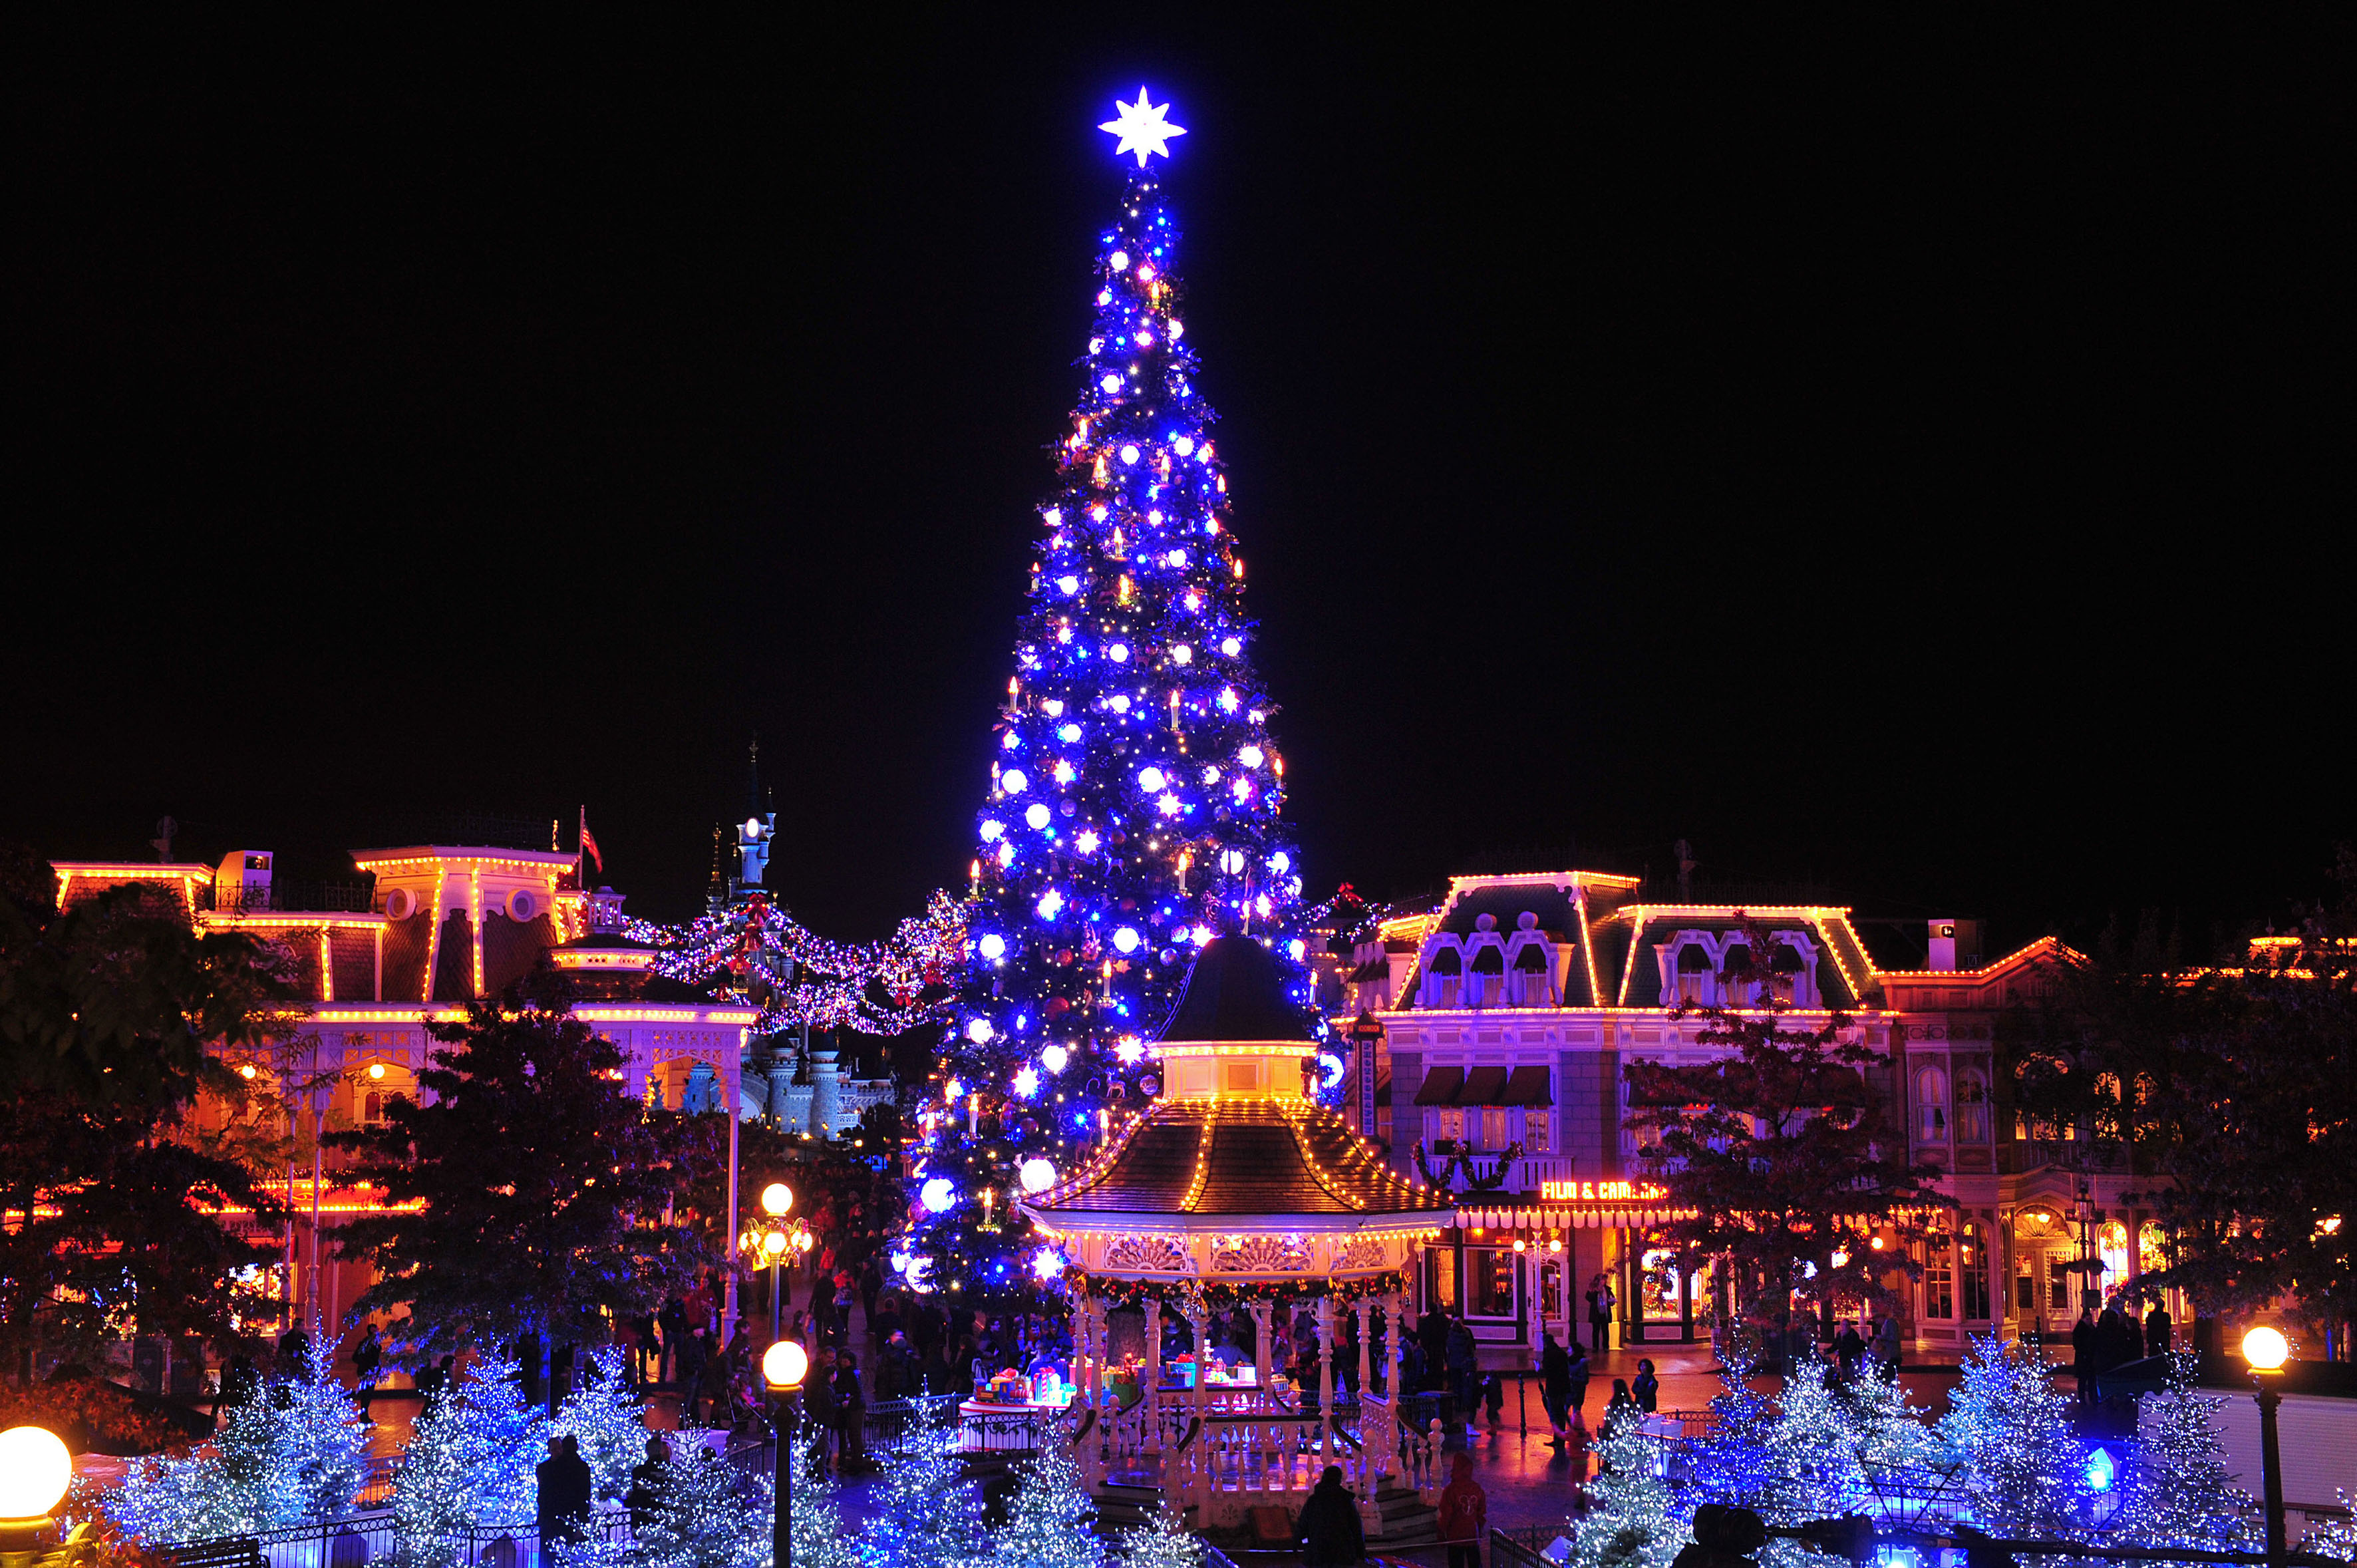 Noel-2013-Disneyland-Paris-11